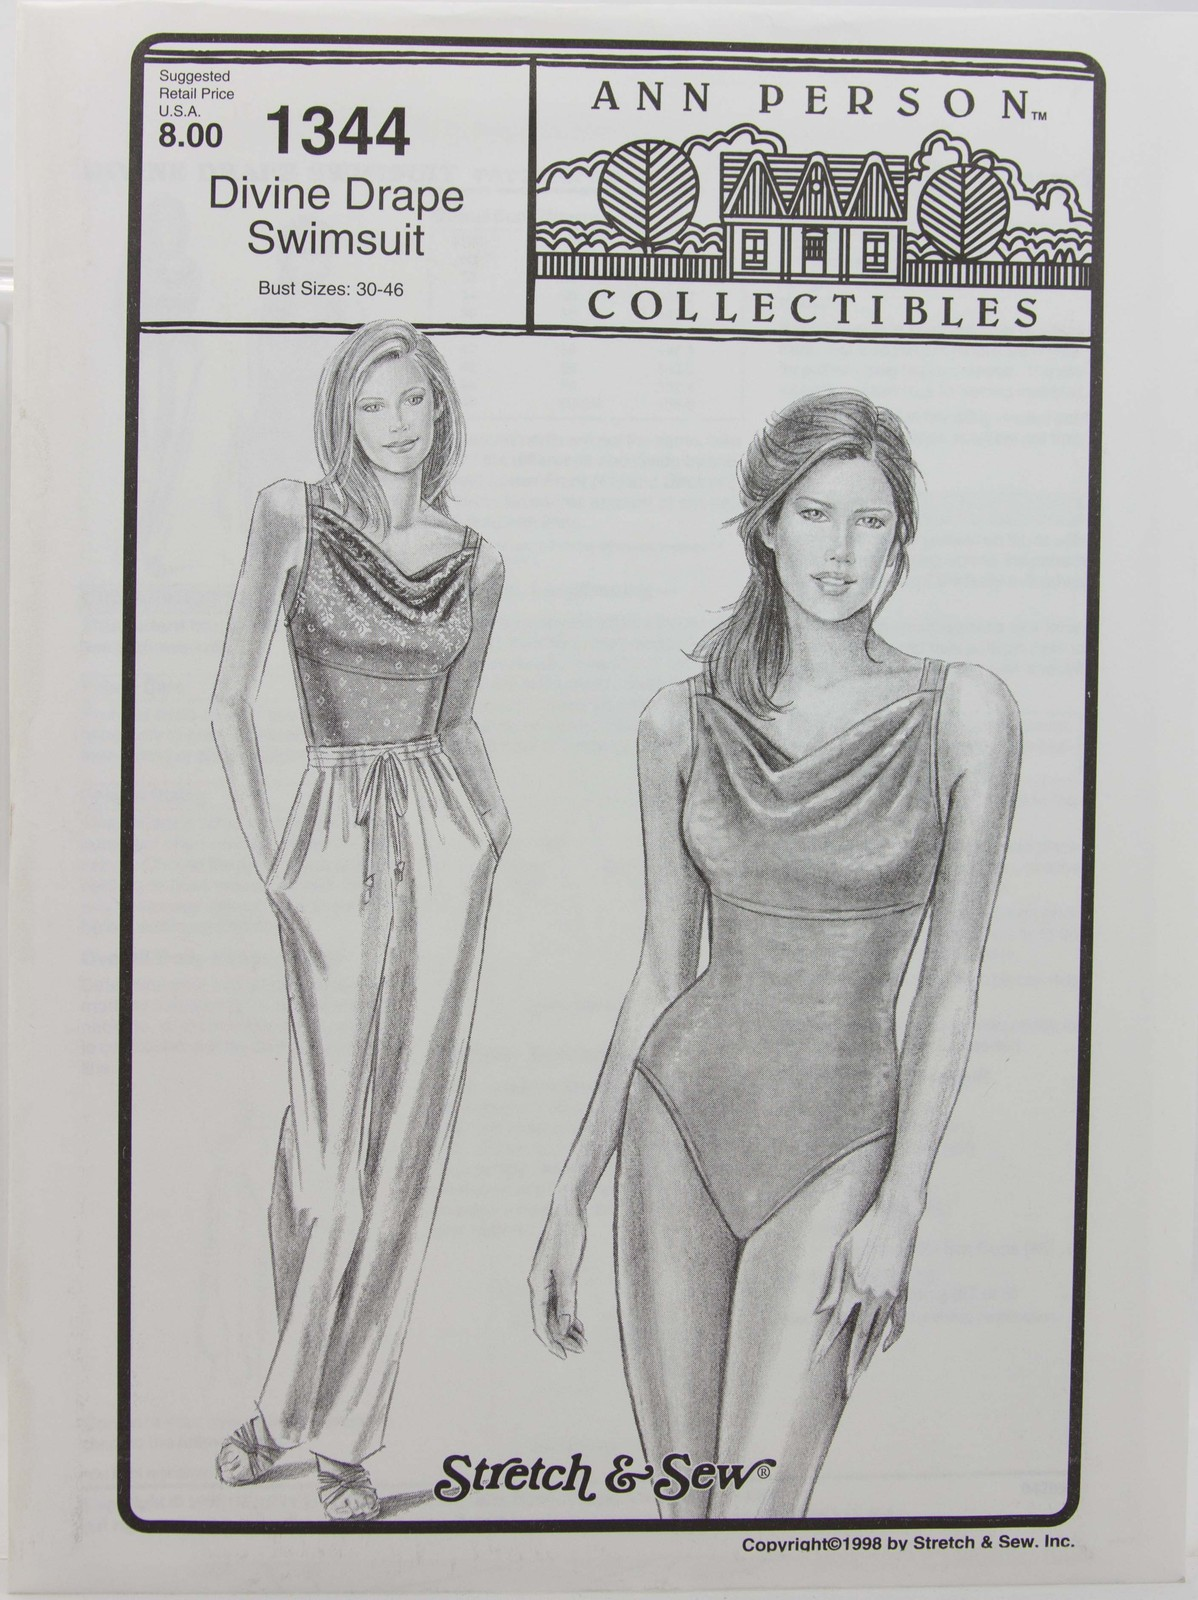 Stretch & Sew Sewing Pattern- Ann Person #1344 - Divine Drape Swimsuit